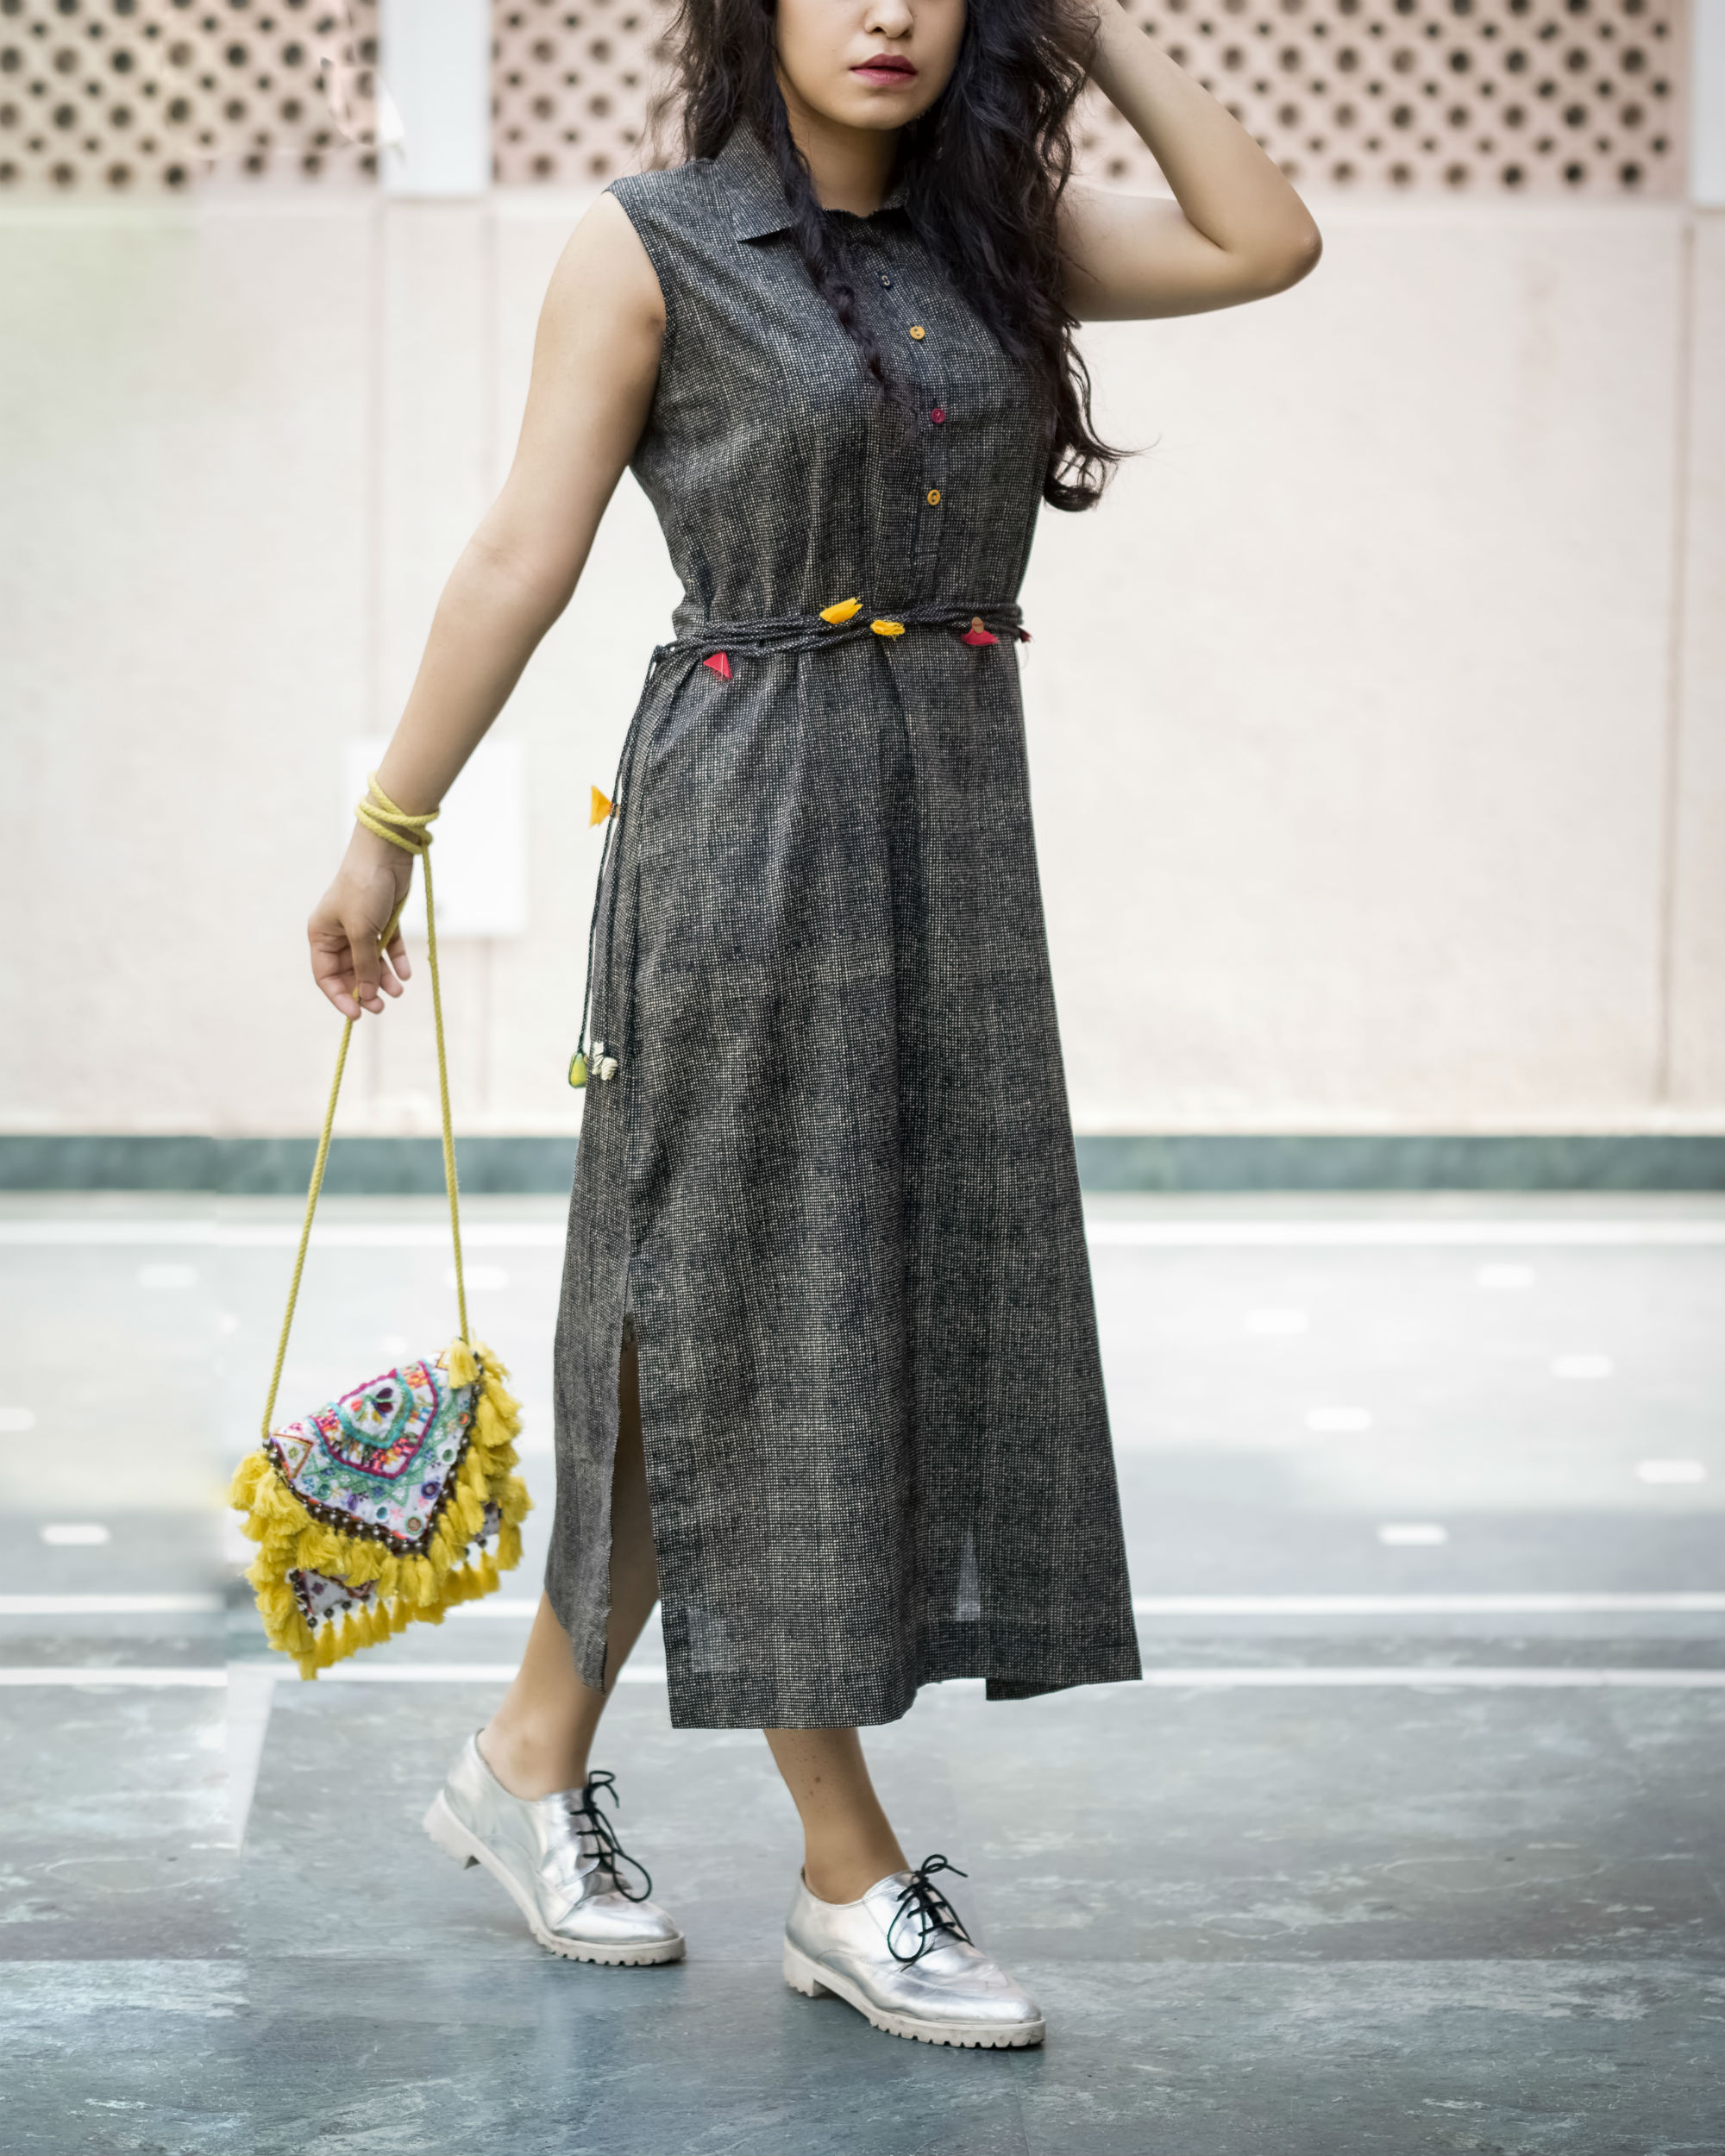 Charcoal belted dress